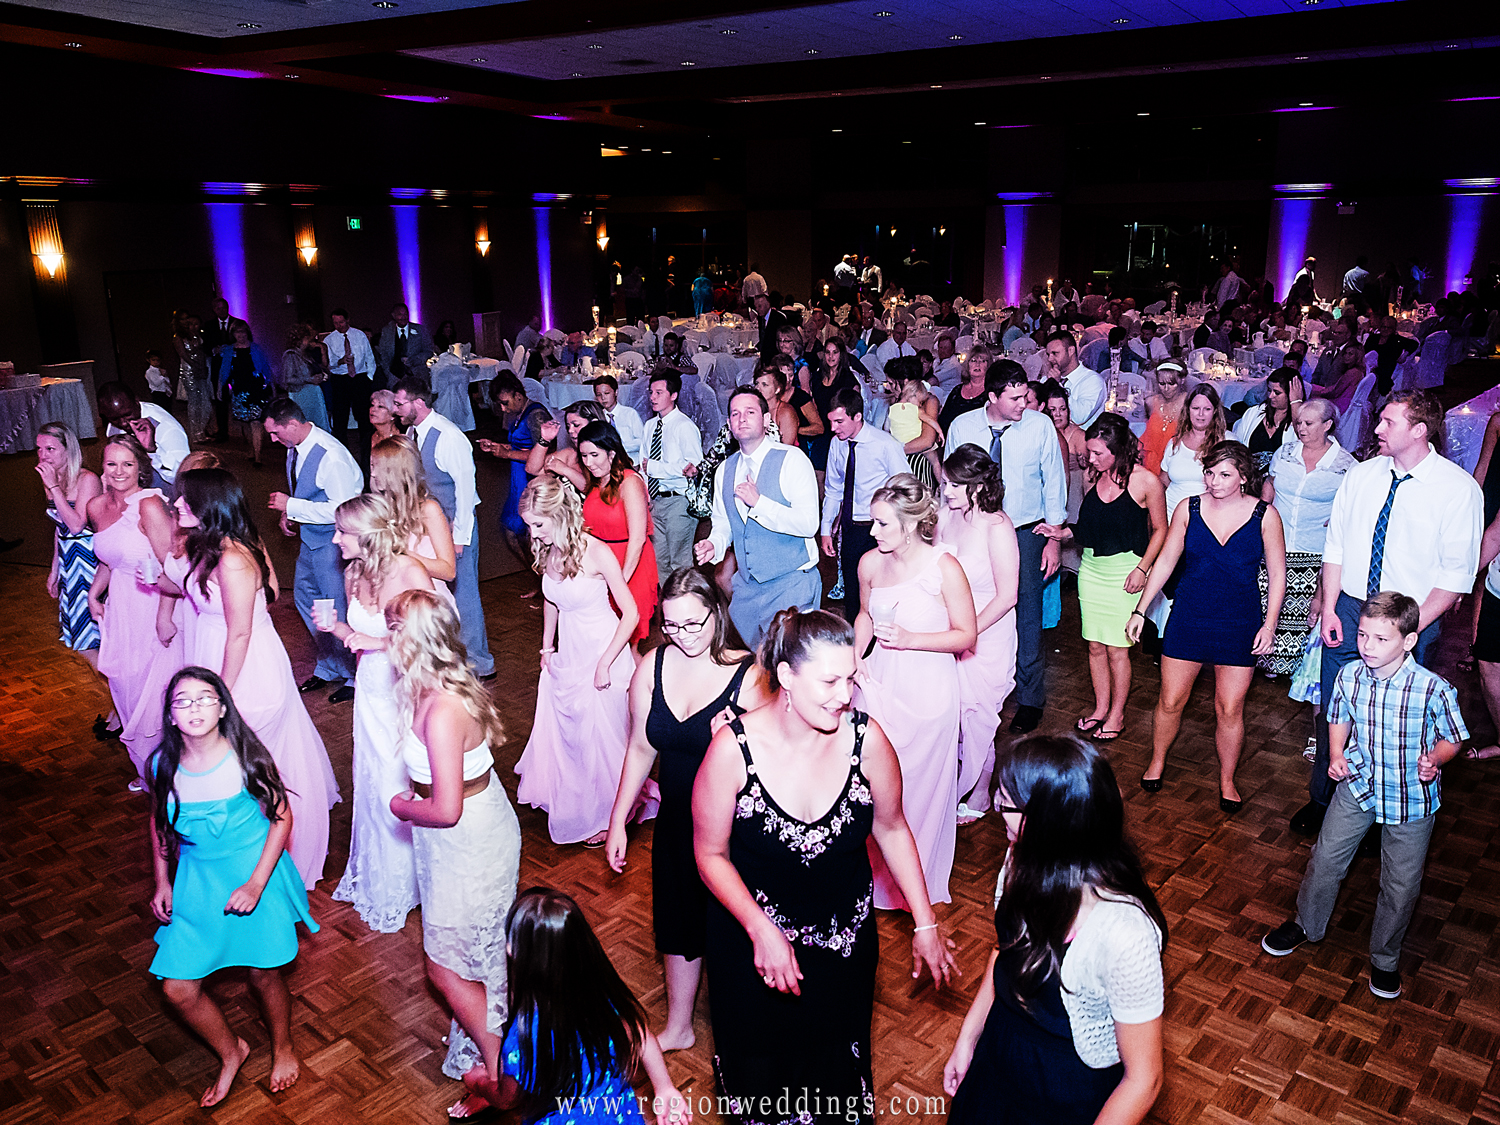 The dance floor is filled to capacity at the Halls of St. George Banquet Hall.